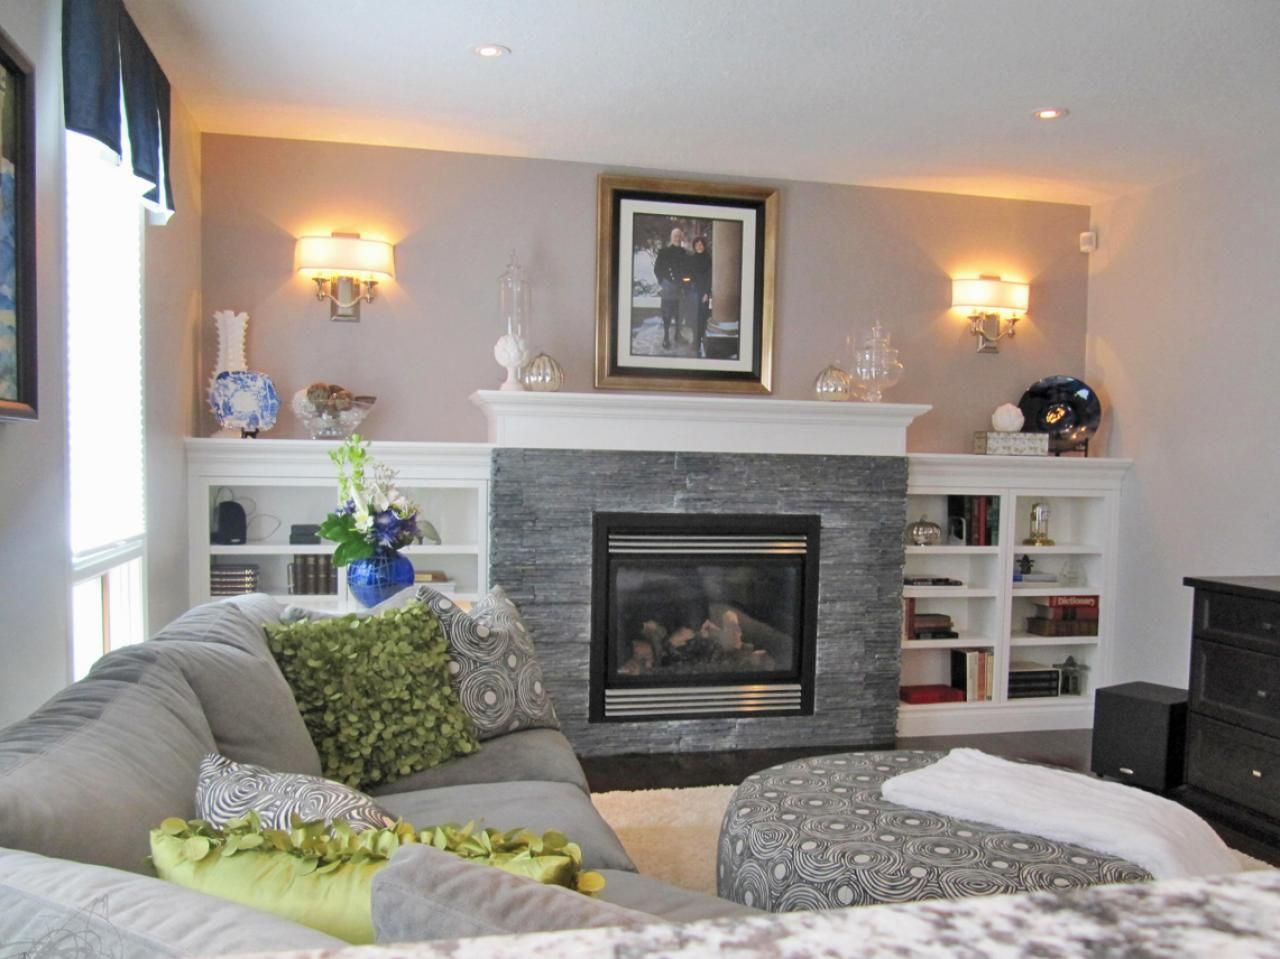 23 Best Fireplace Remodel Images On Pinterest  Fire Places Mesmerizing Living Room Designs With Fireplace Design Inspiration